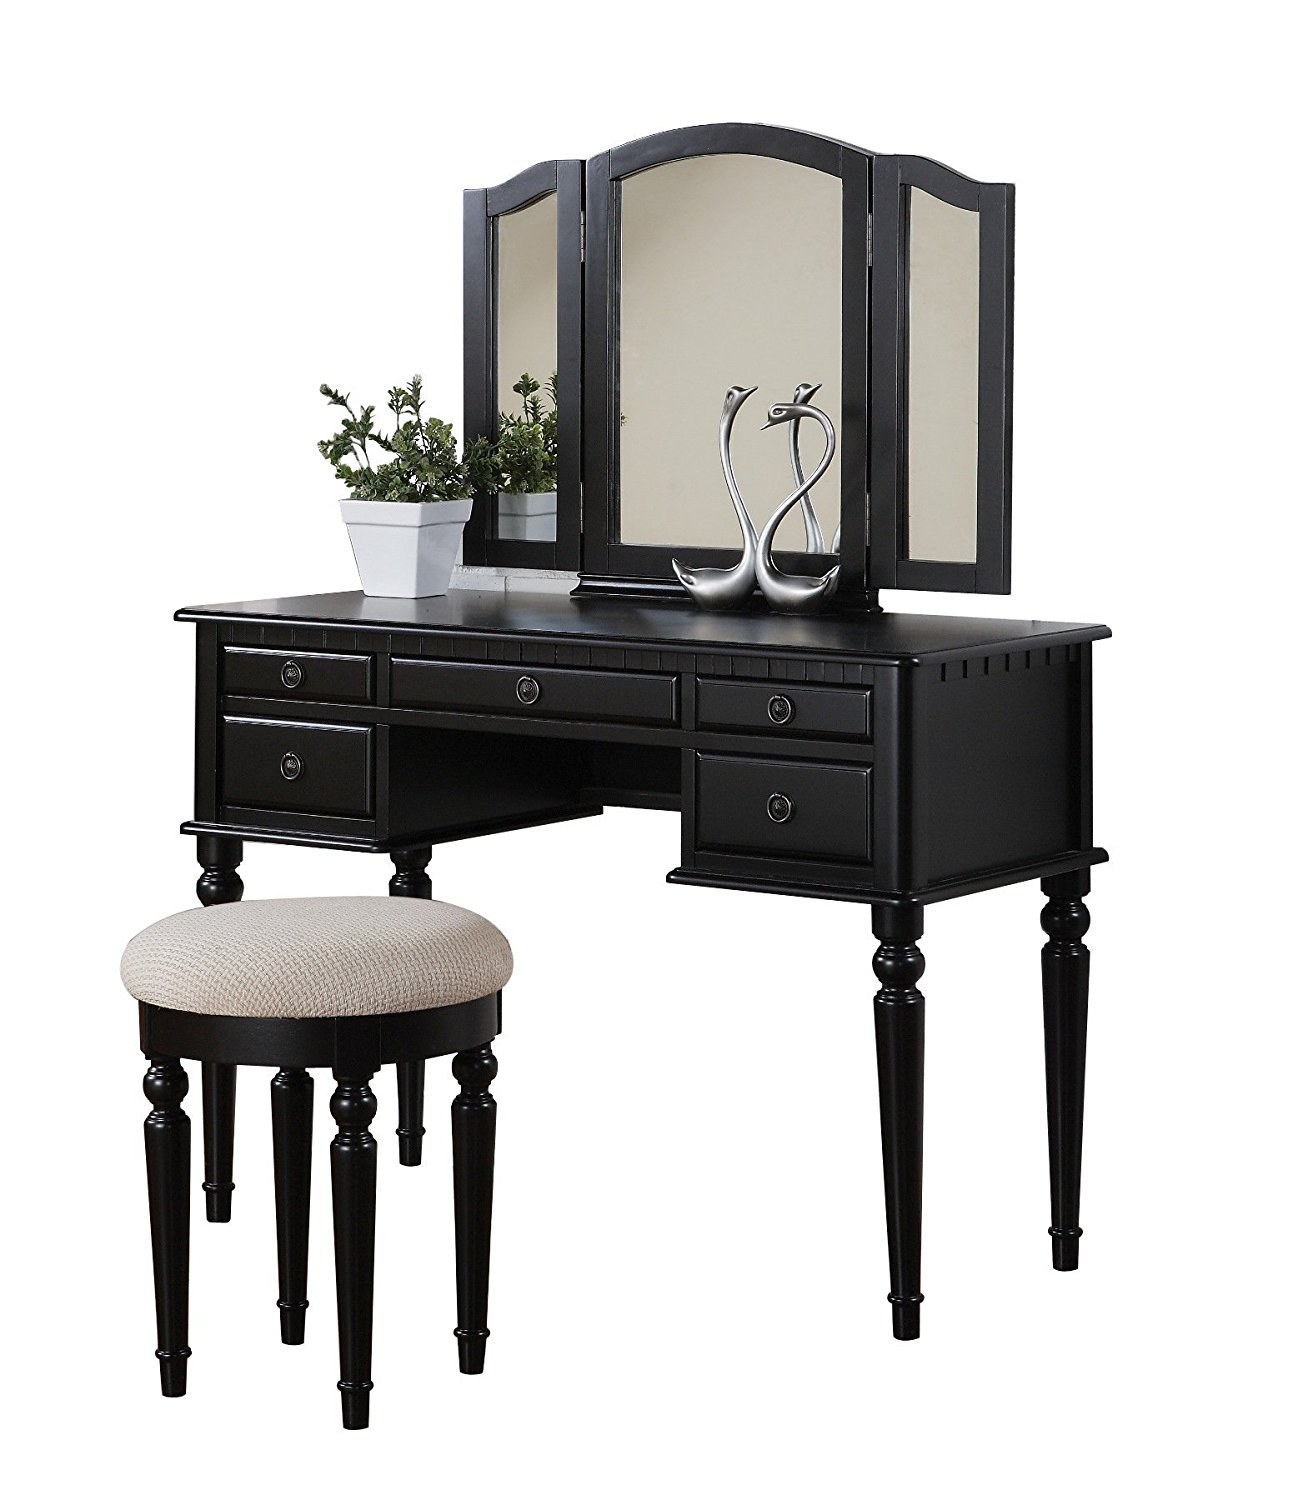 Makeup vanity table with lighted mirror decor ideasdecor for Vanity table with lighted mirror and bench